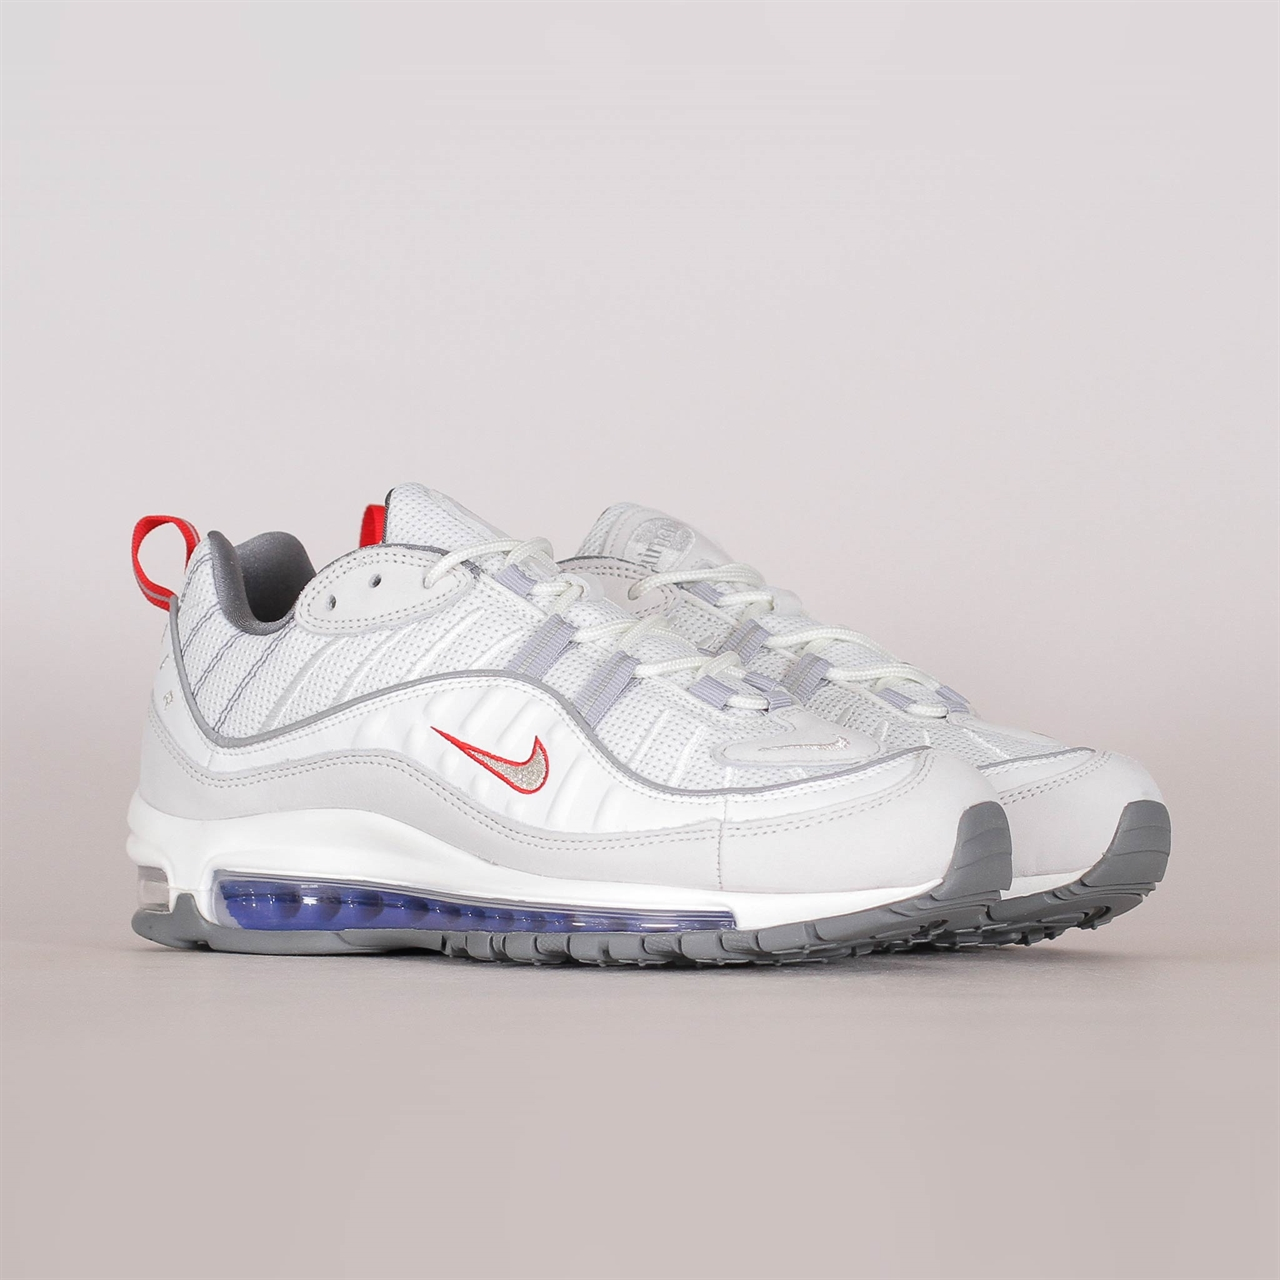 Nike Air max 98 | Wit | Sneakers | CD1538 100 | Caliroots